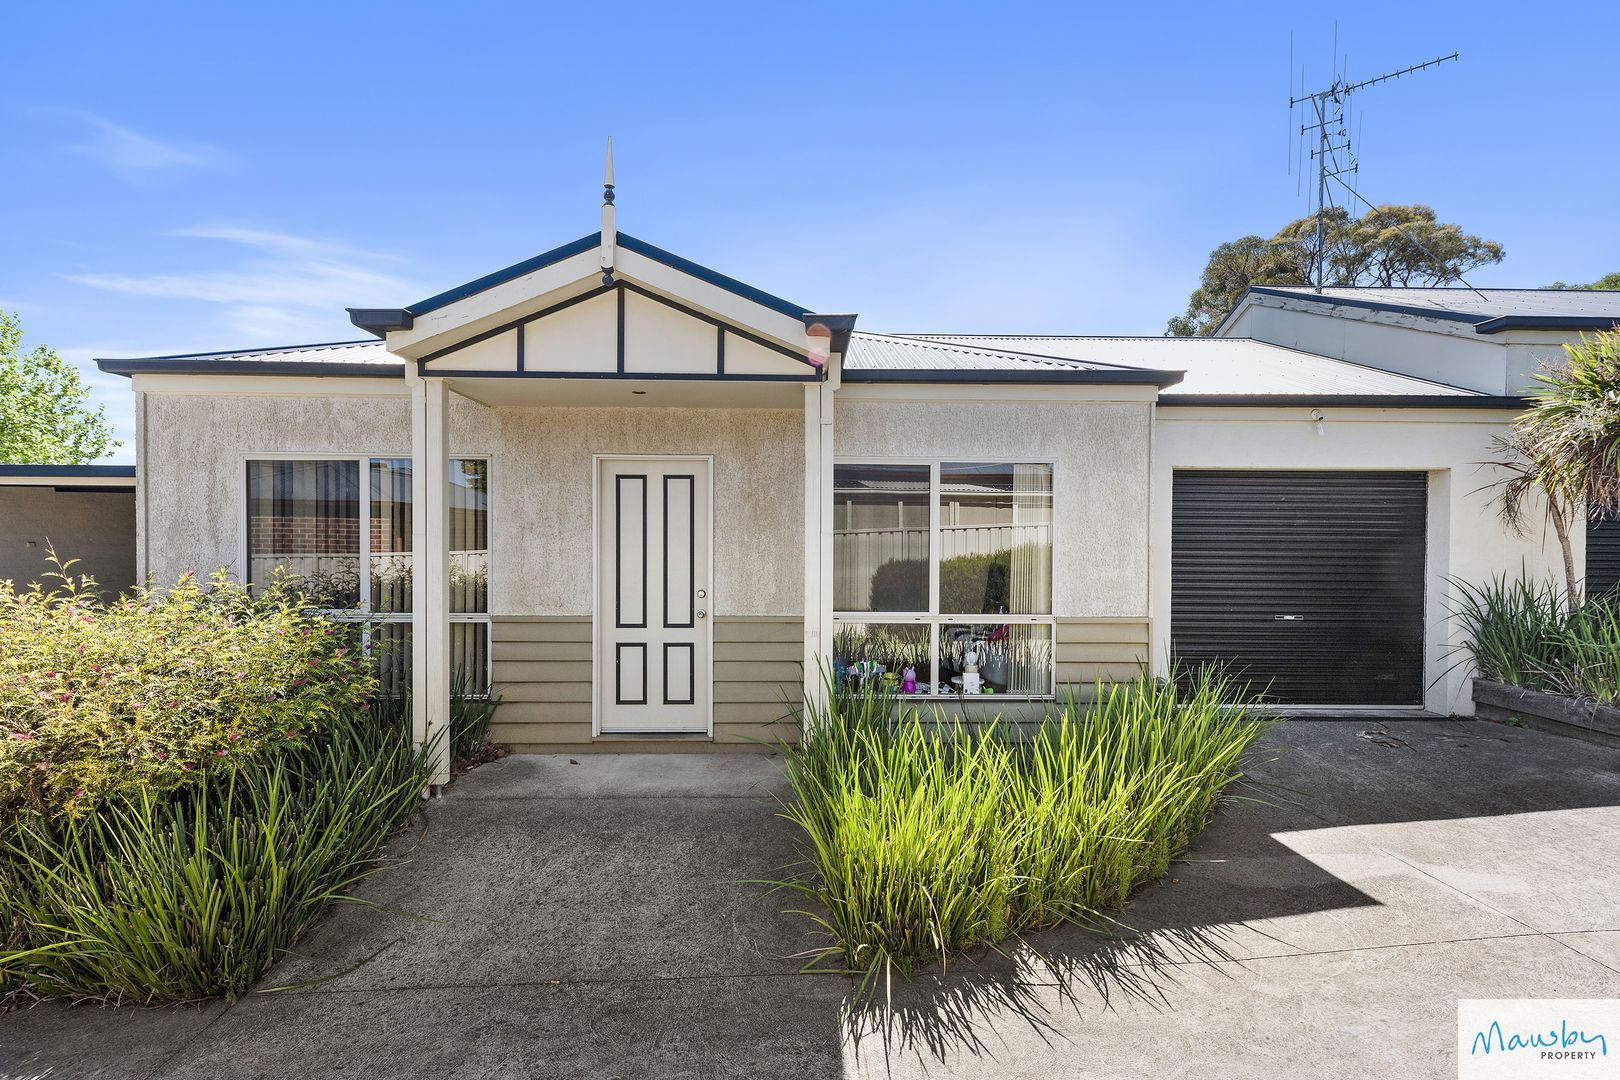 2/377 High Street, Golden Square VIC 3555, Image 0